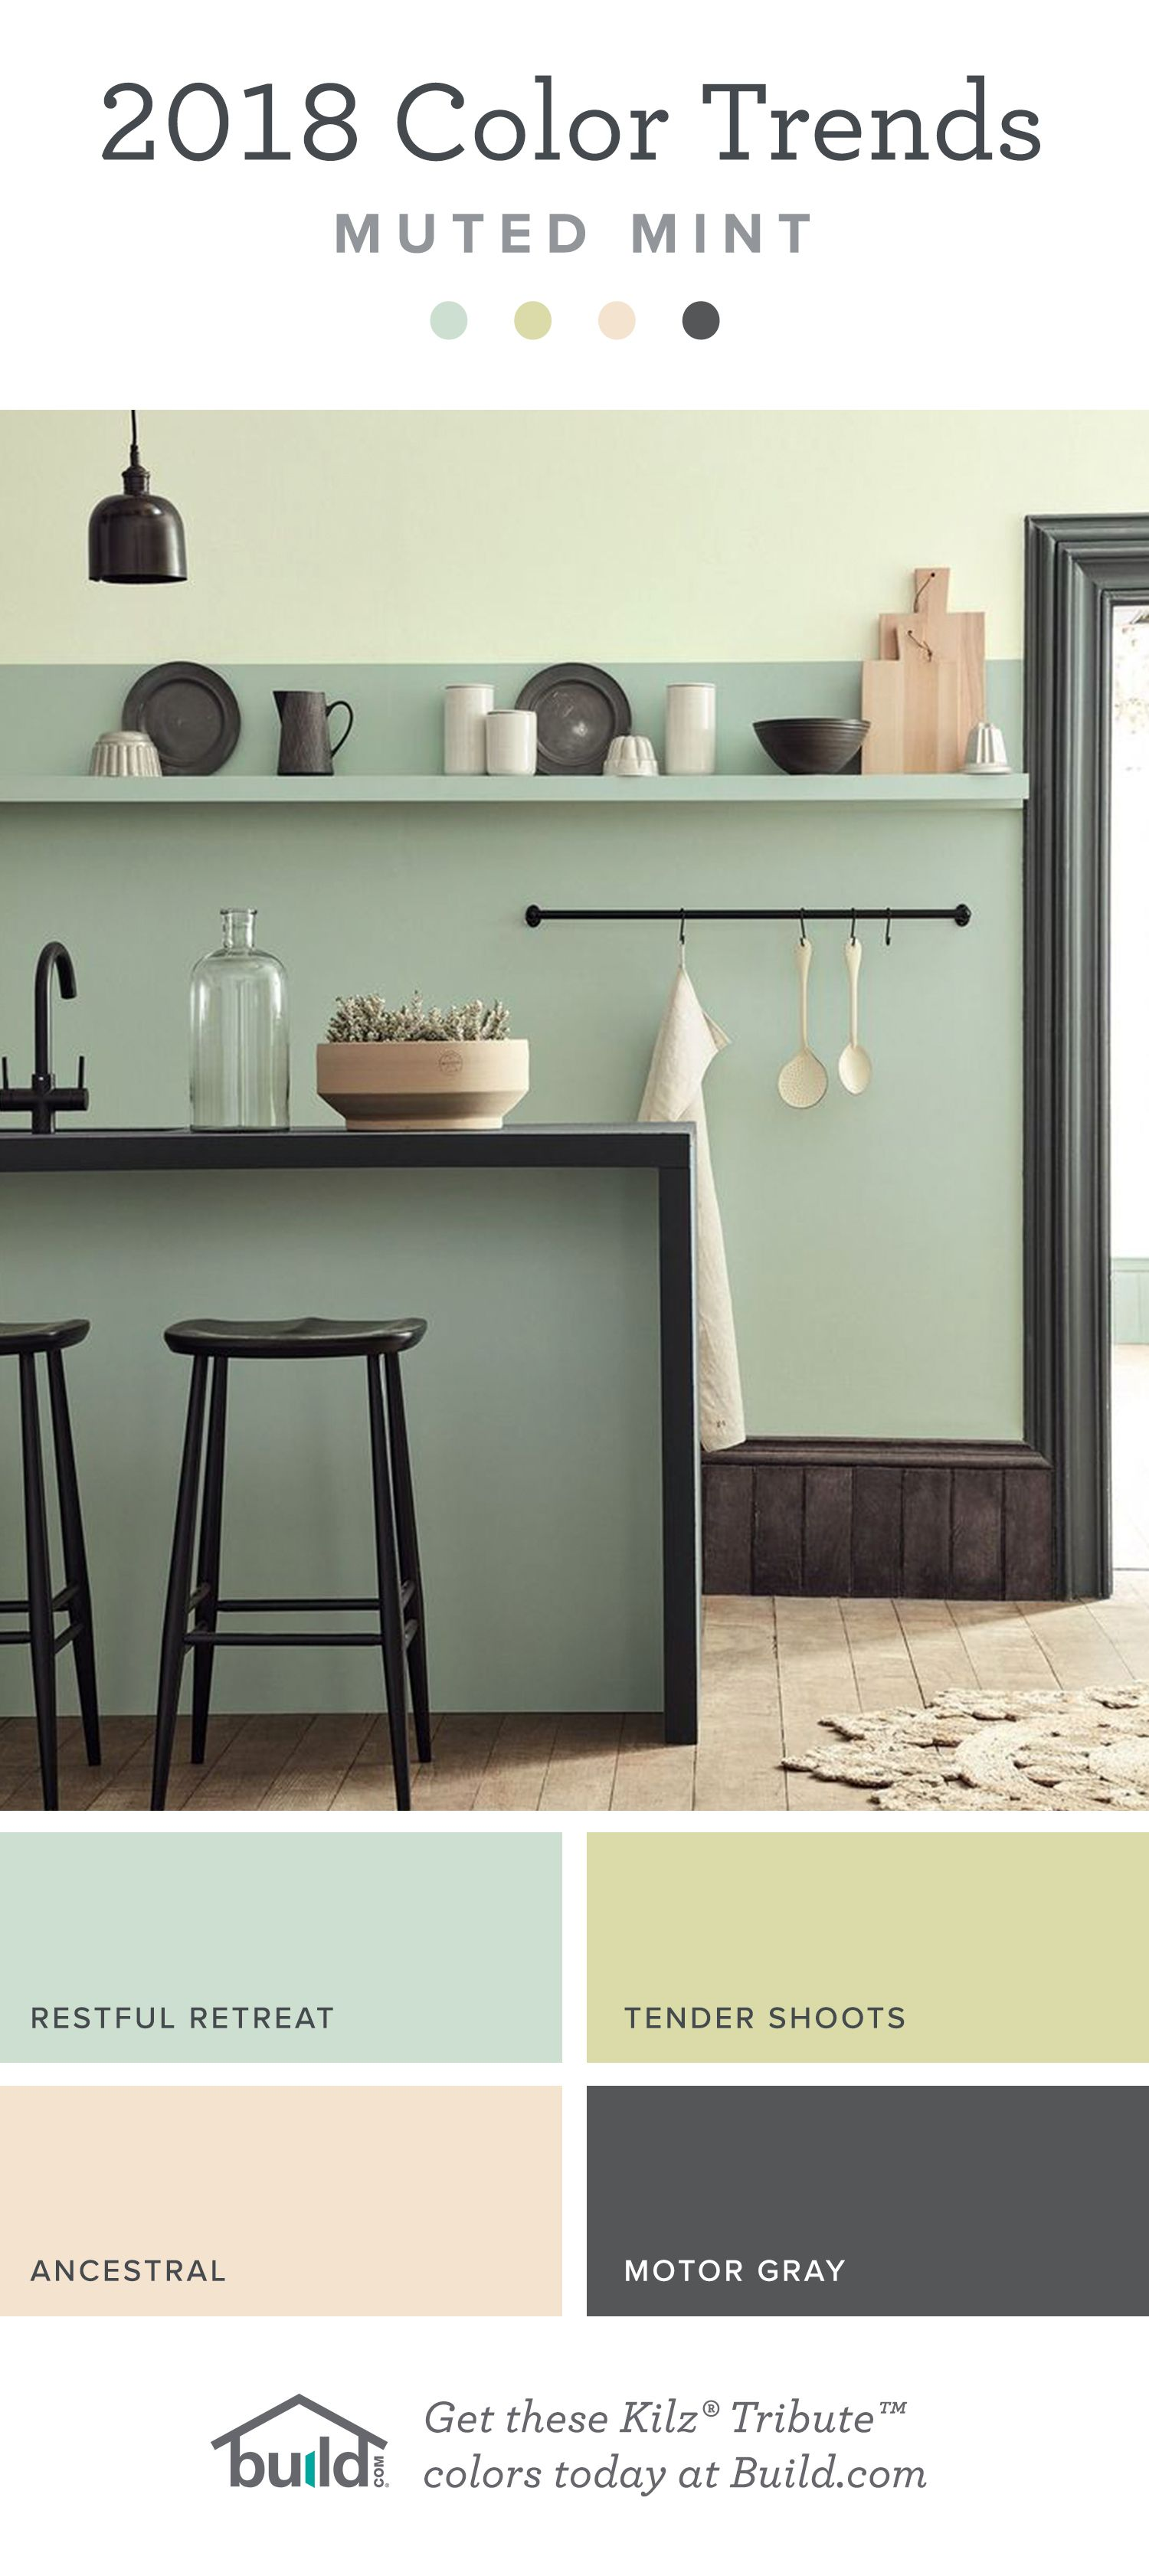 2018 Color Trends Muted Mint Created By Ads Bulk